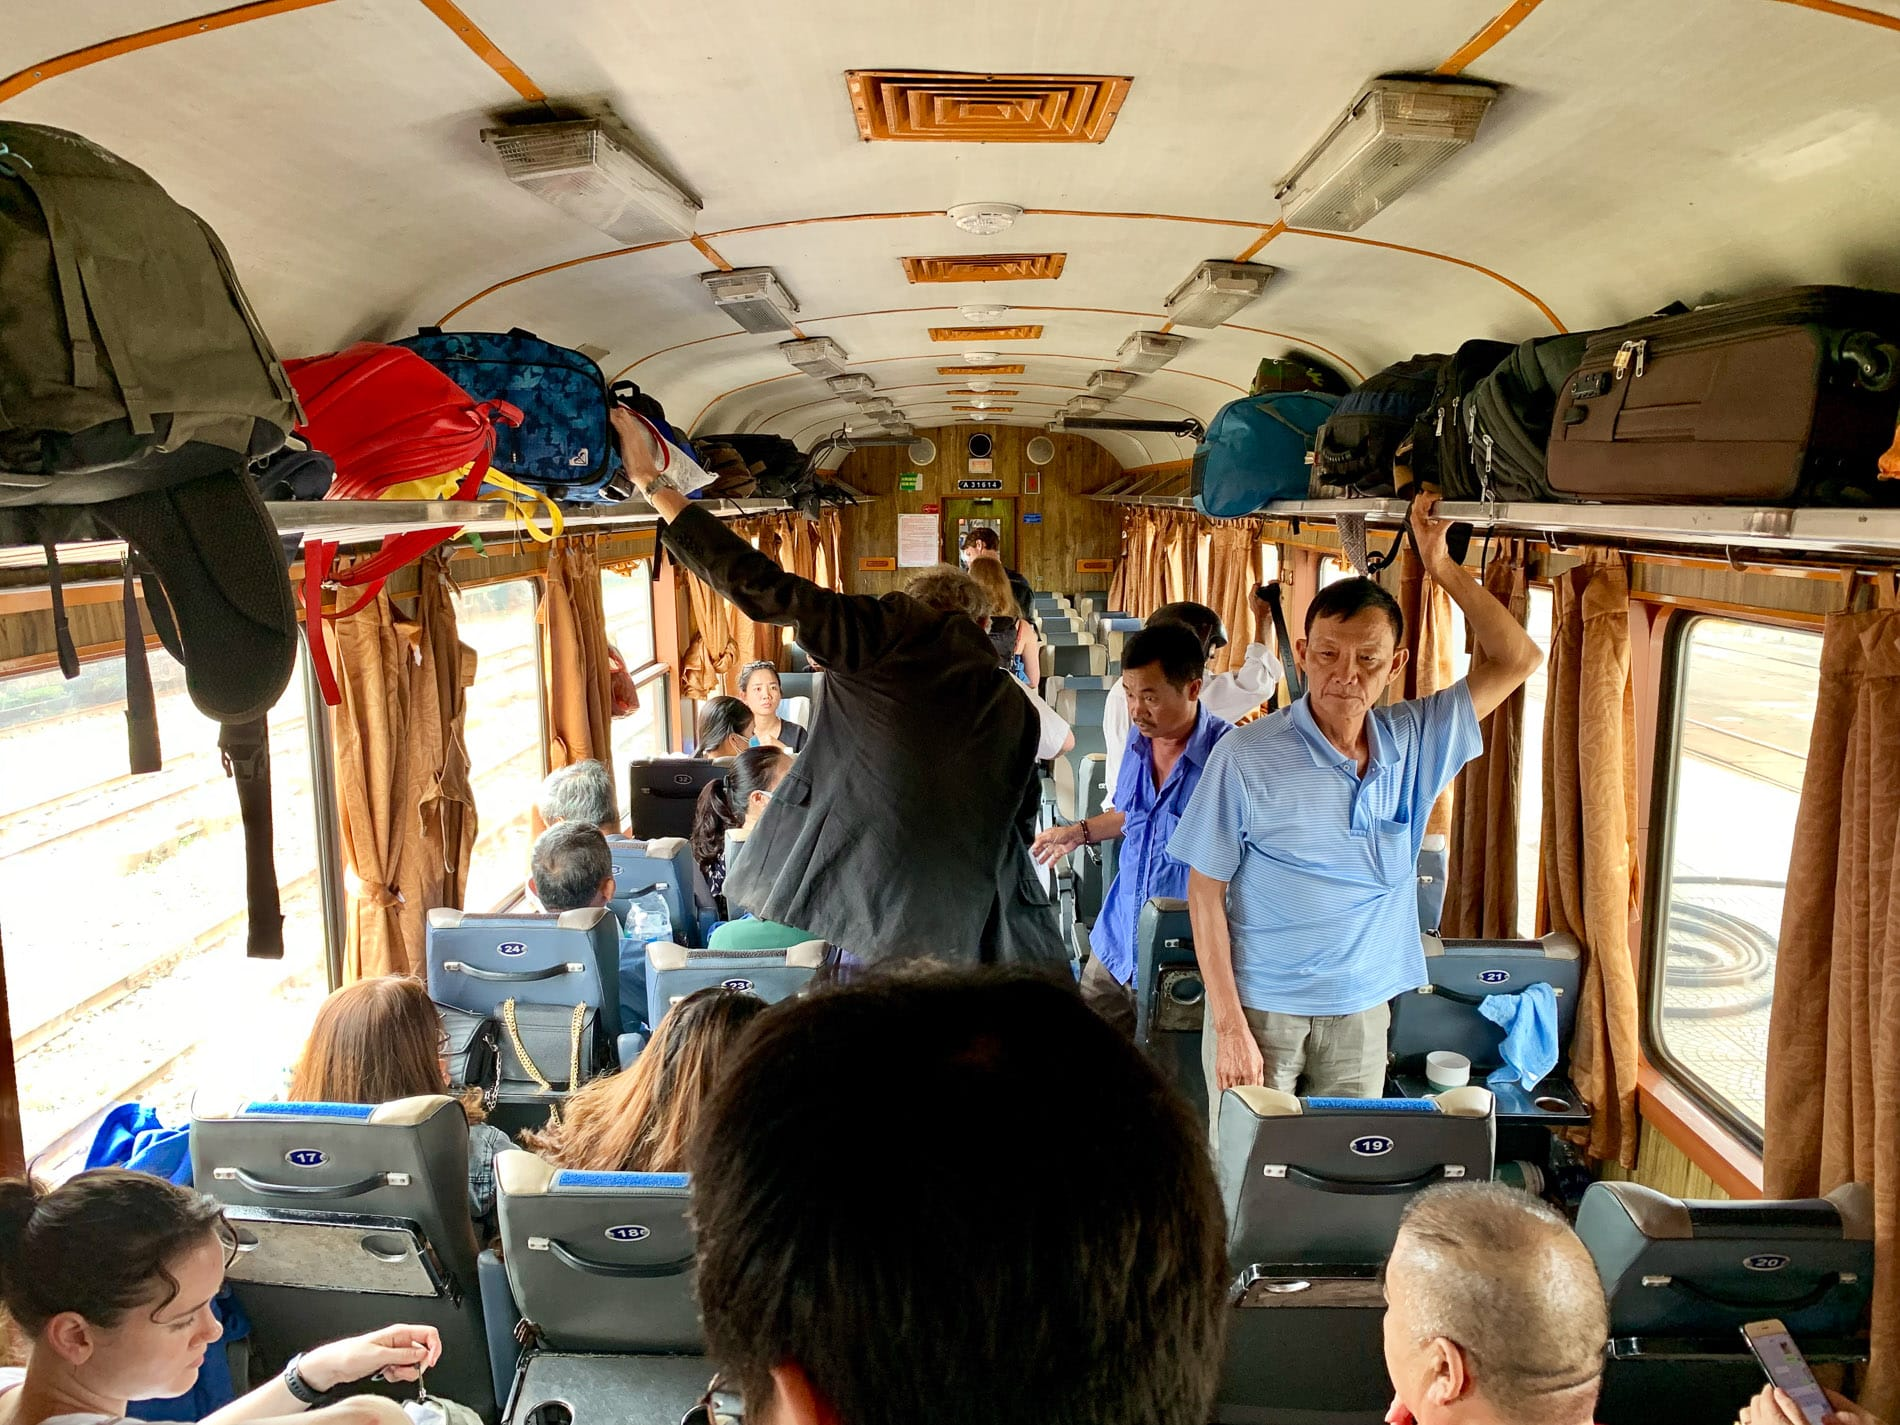 Airline style soft-seats offered on train from Hanoi to Da Nang